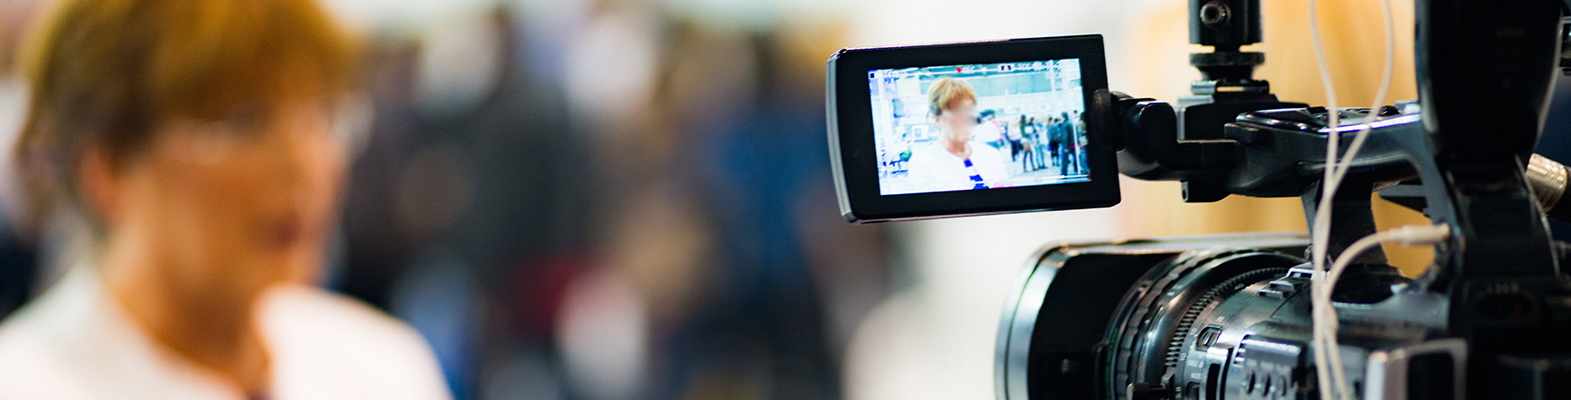 video camera with woman blurred in background